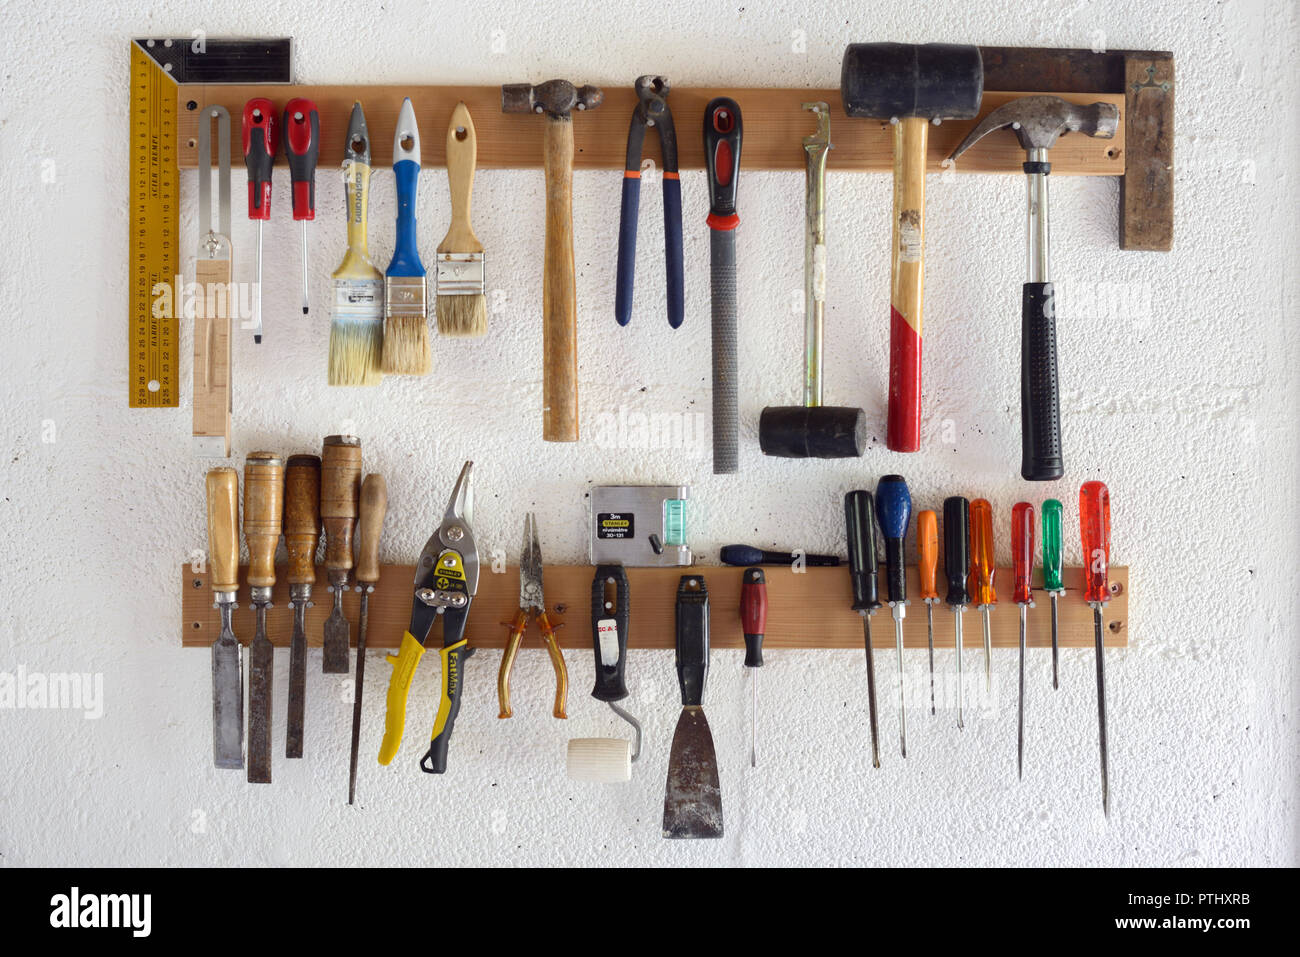 https www alamy com woodworking tools hand tools including screw drivers paint brushes and hammers hanging in workshop or garage wall mounted tool rack image221670383 html